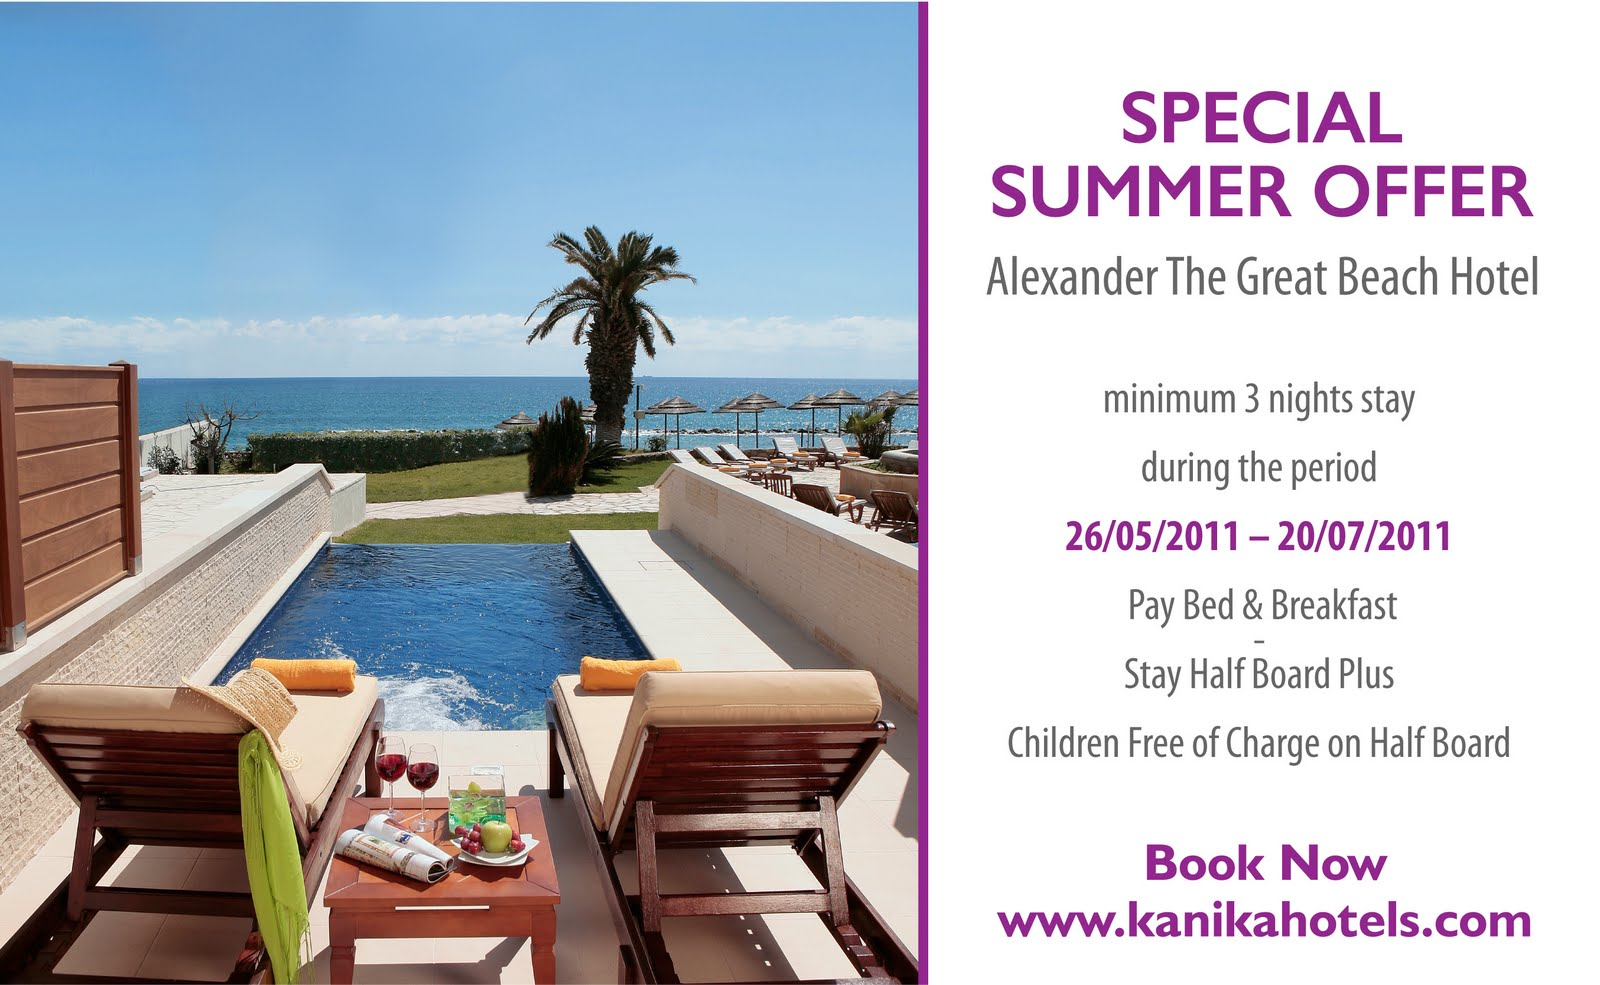 kanika hotels cyprus alexander the great beach hotel